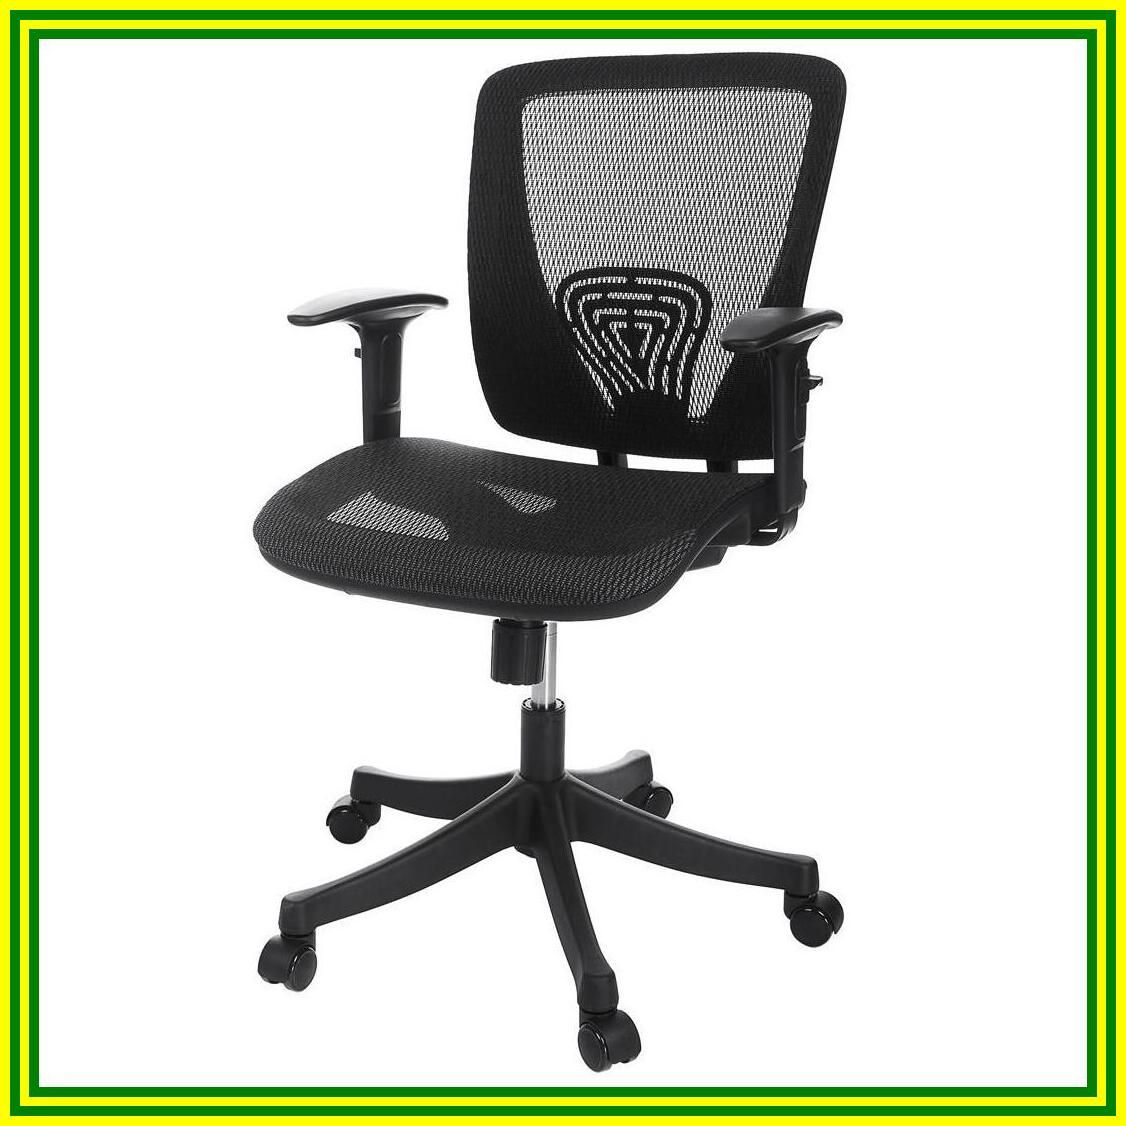 57 Reference Of Chair Office Lumbar Support In 2020 Office Chair Office Chair Lumbar Support Comfortable Chair